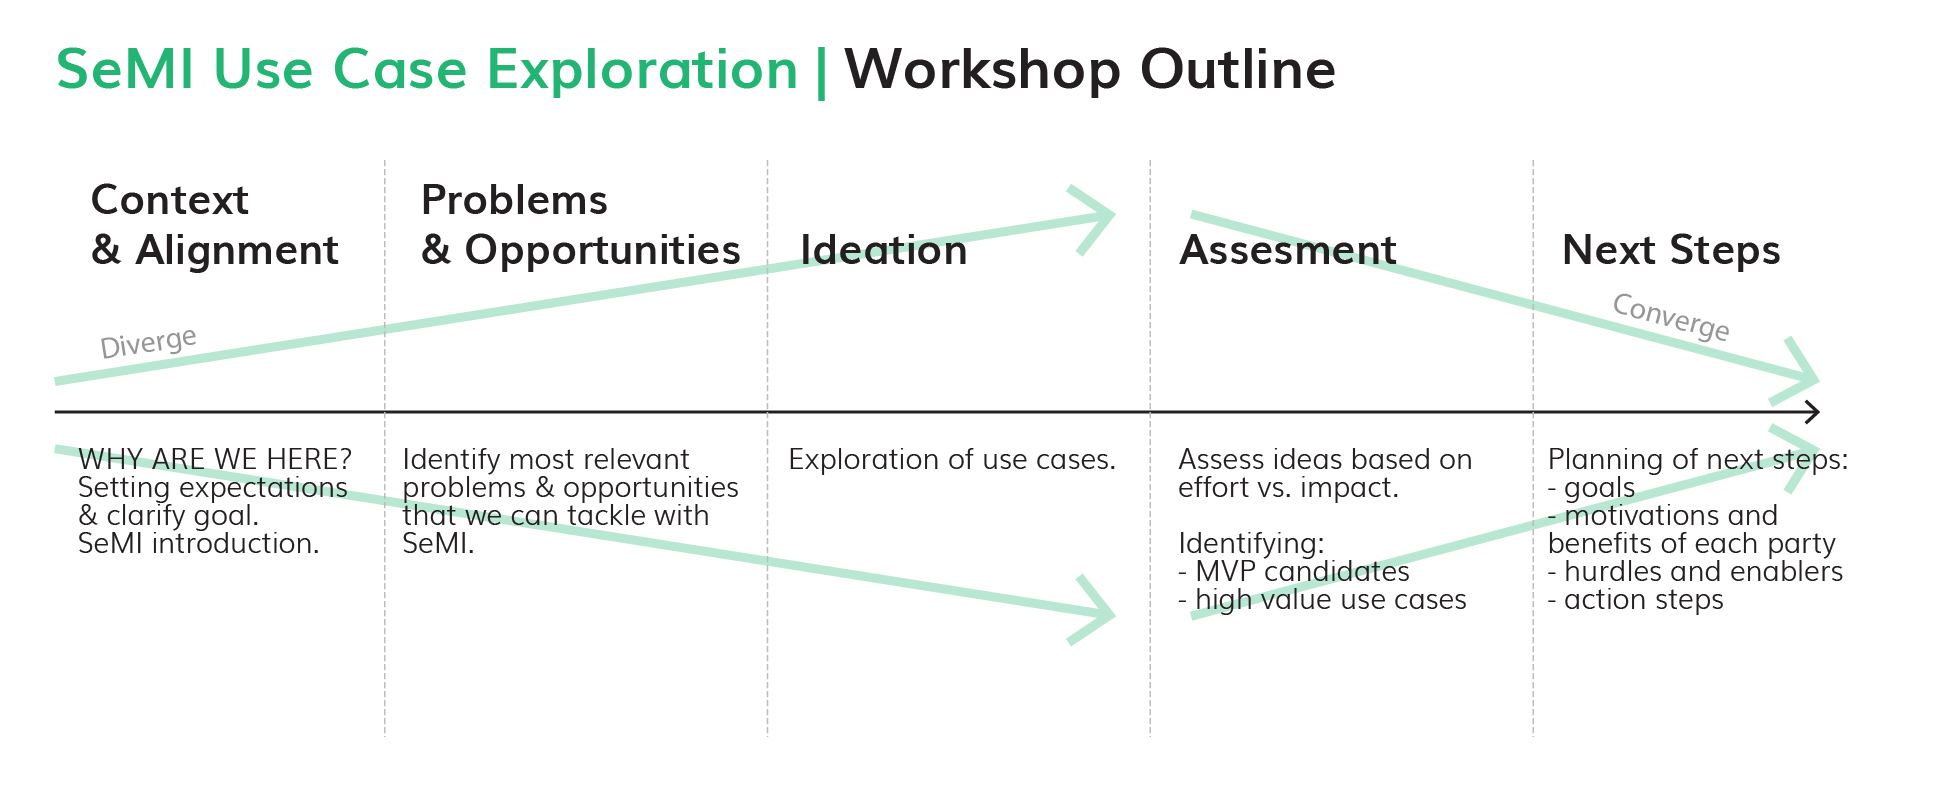 Outline of the SeMI exploration workshop showing the five steps from diverge to converge